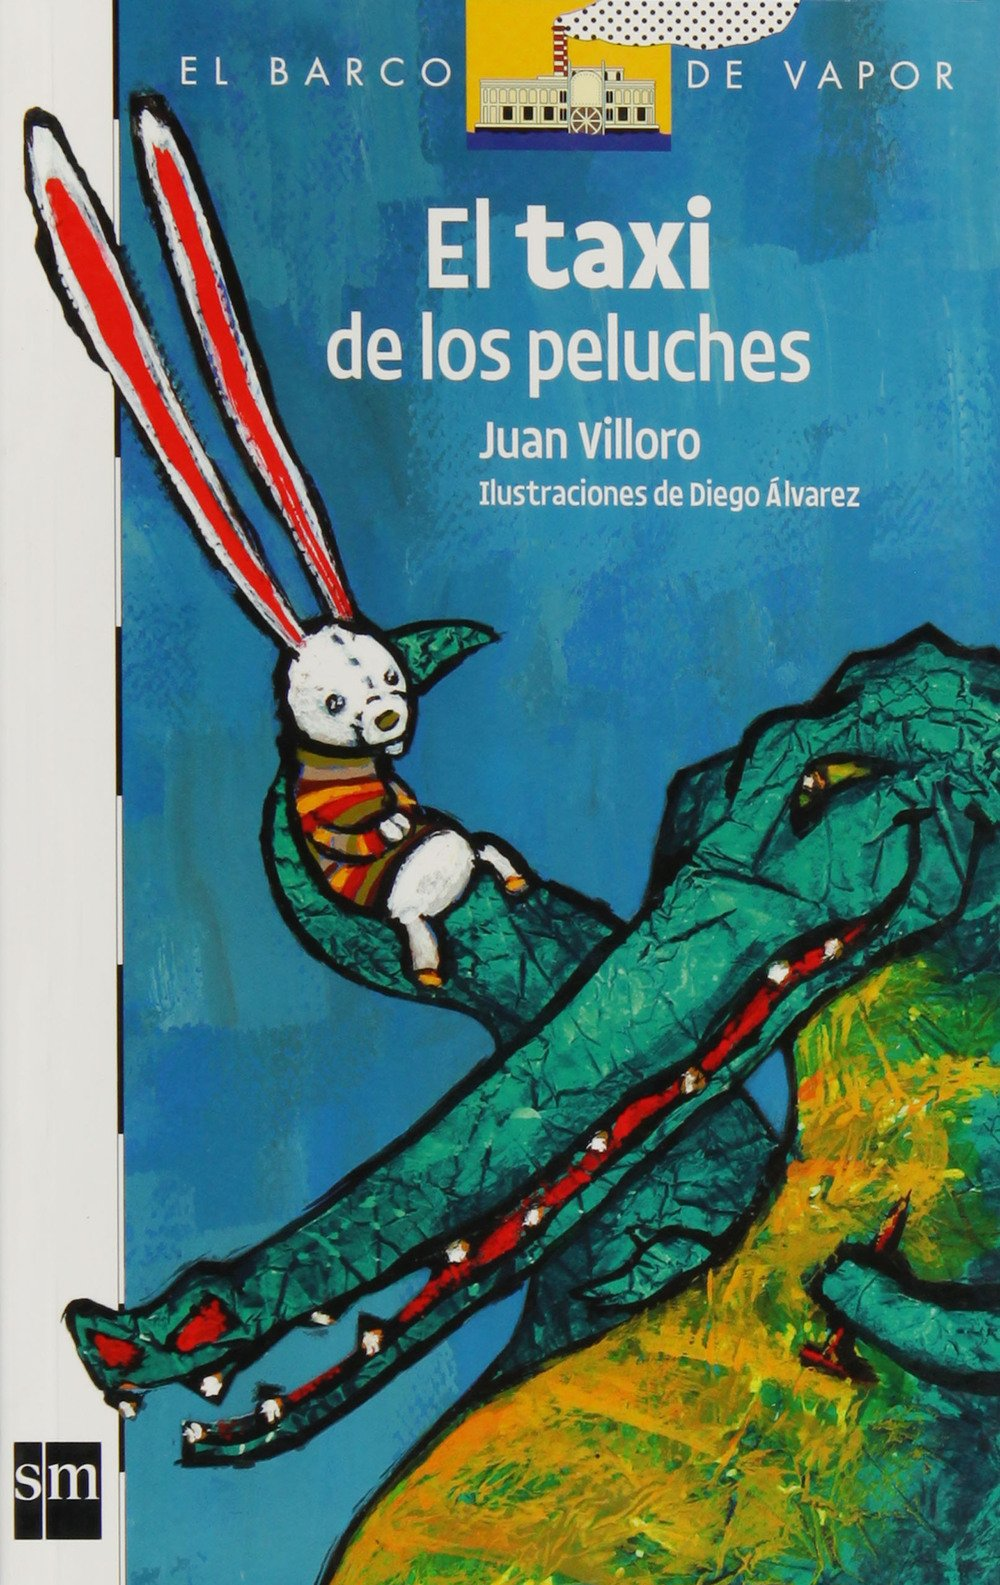 El taxi de los peluches / The Taxi of the Stuffed Animals (El barco de vapor: serie blanca / The Steamboat: White Series) (Spanish Edition): Juan Villoro, ...